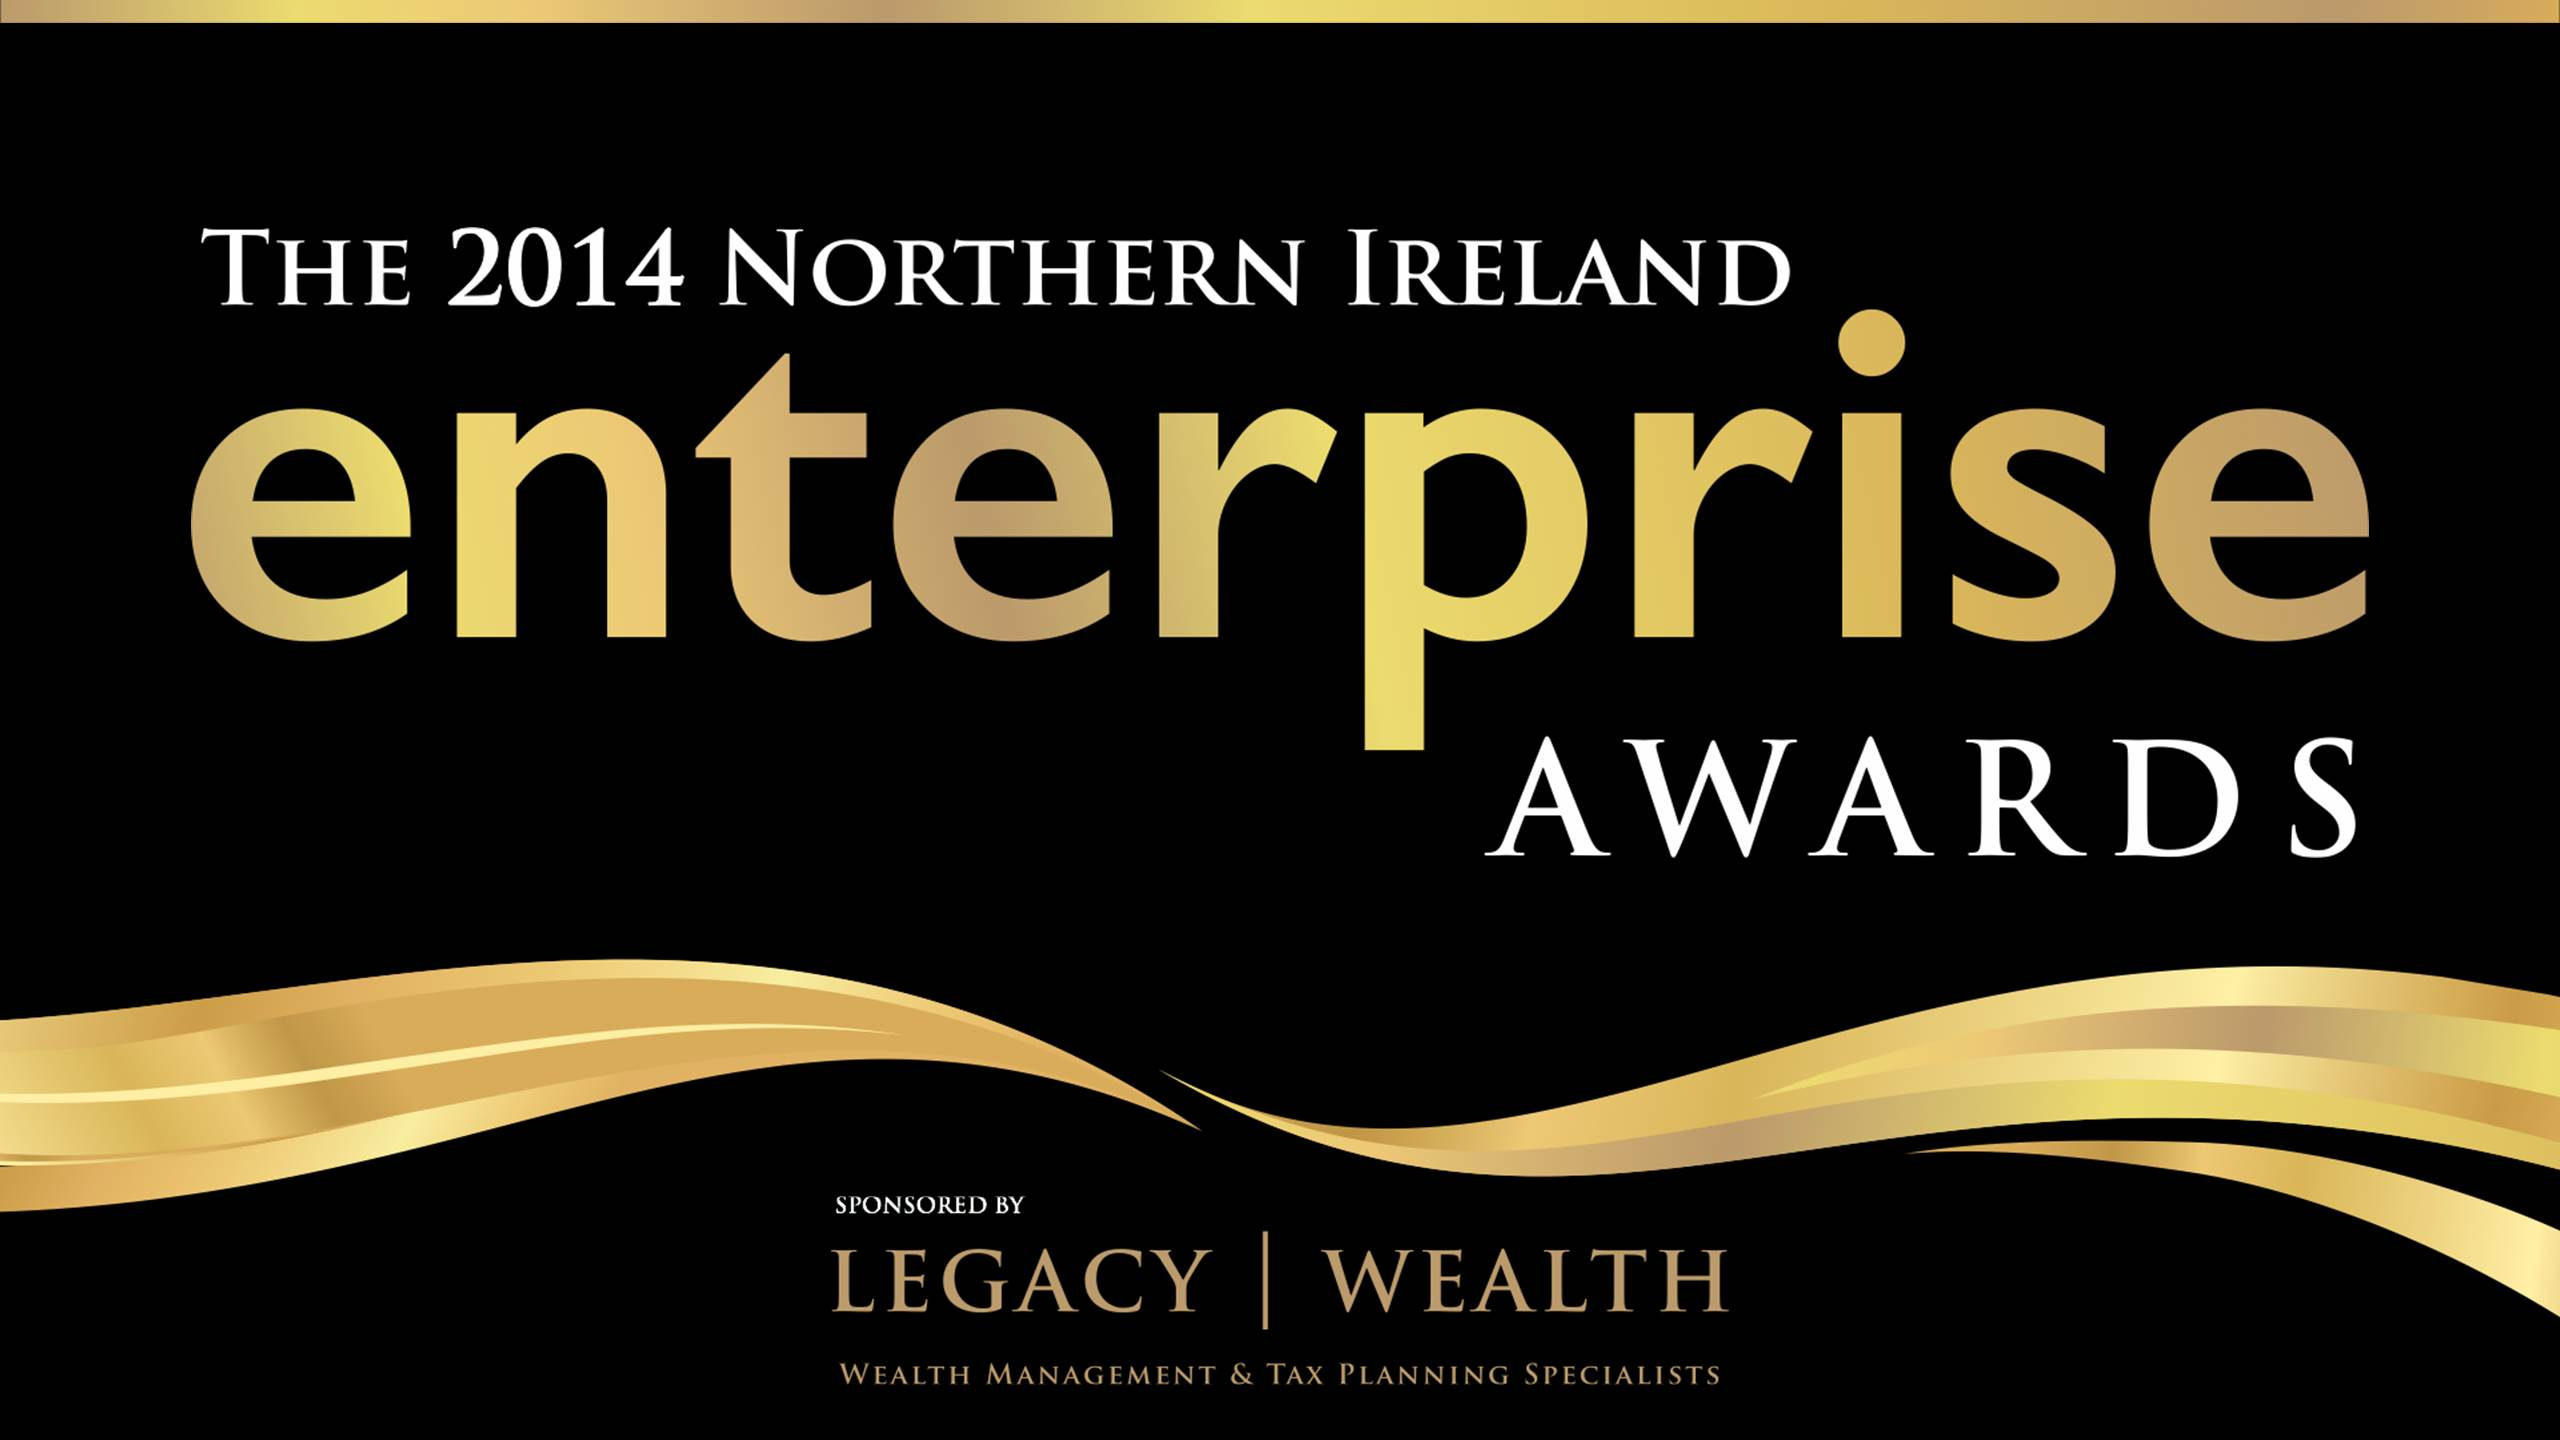 EnterpriseNI Northern Ireland Enterprise Awards 2014